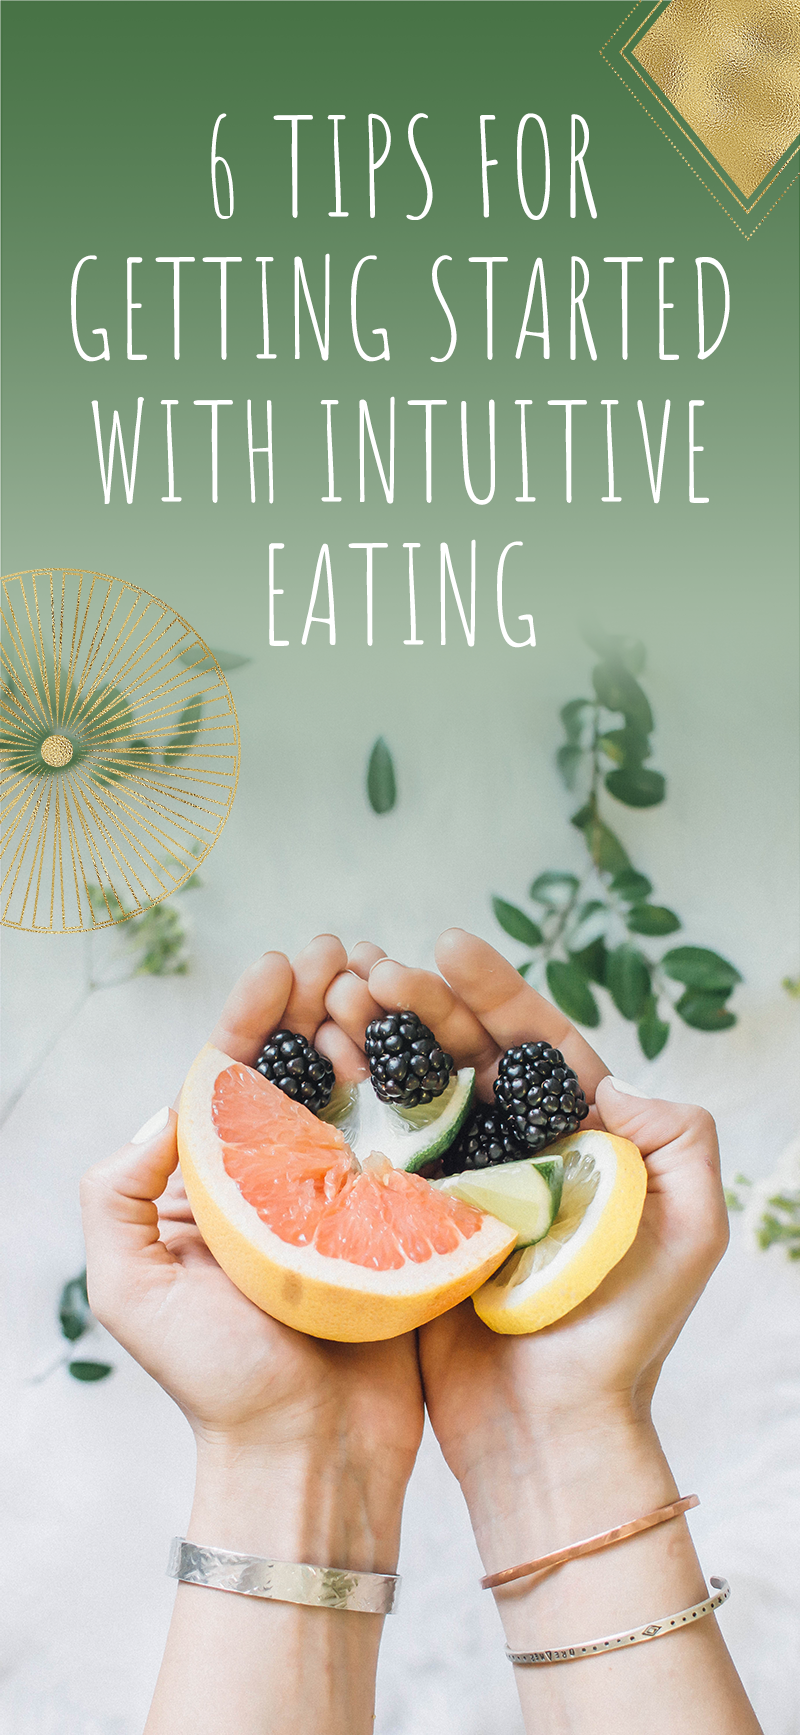 Plain-pic2-intuitive-eating